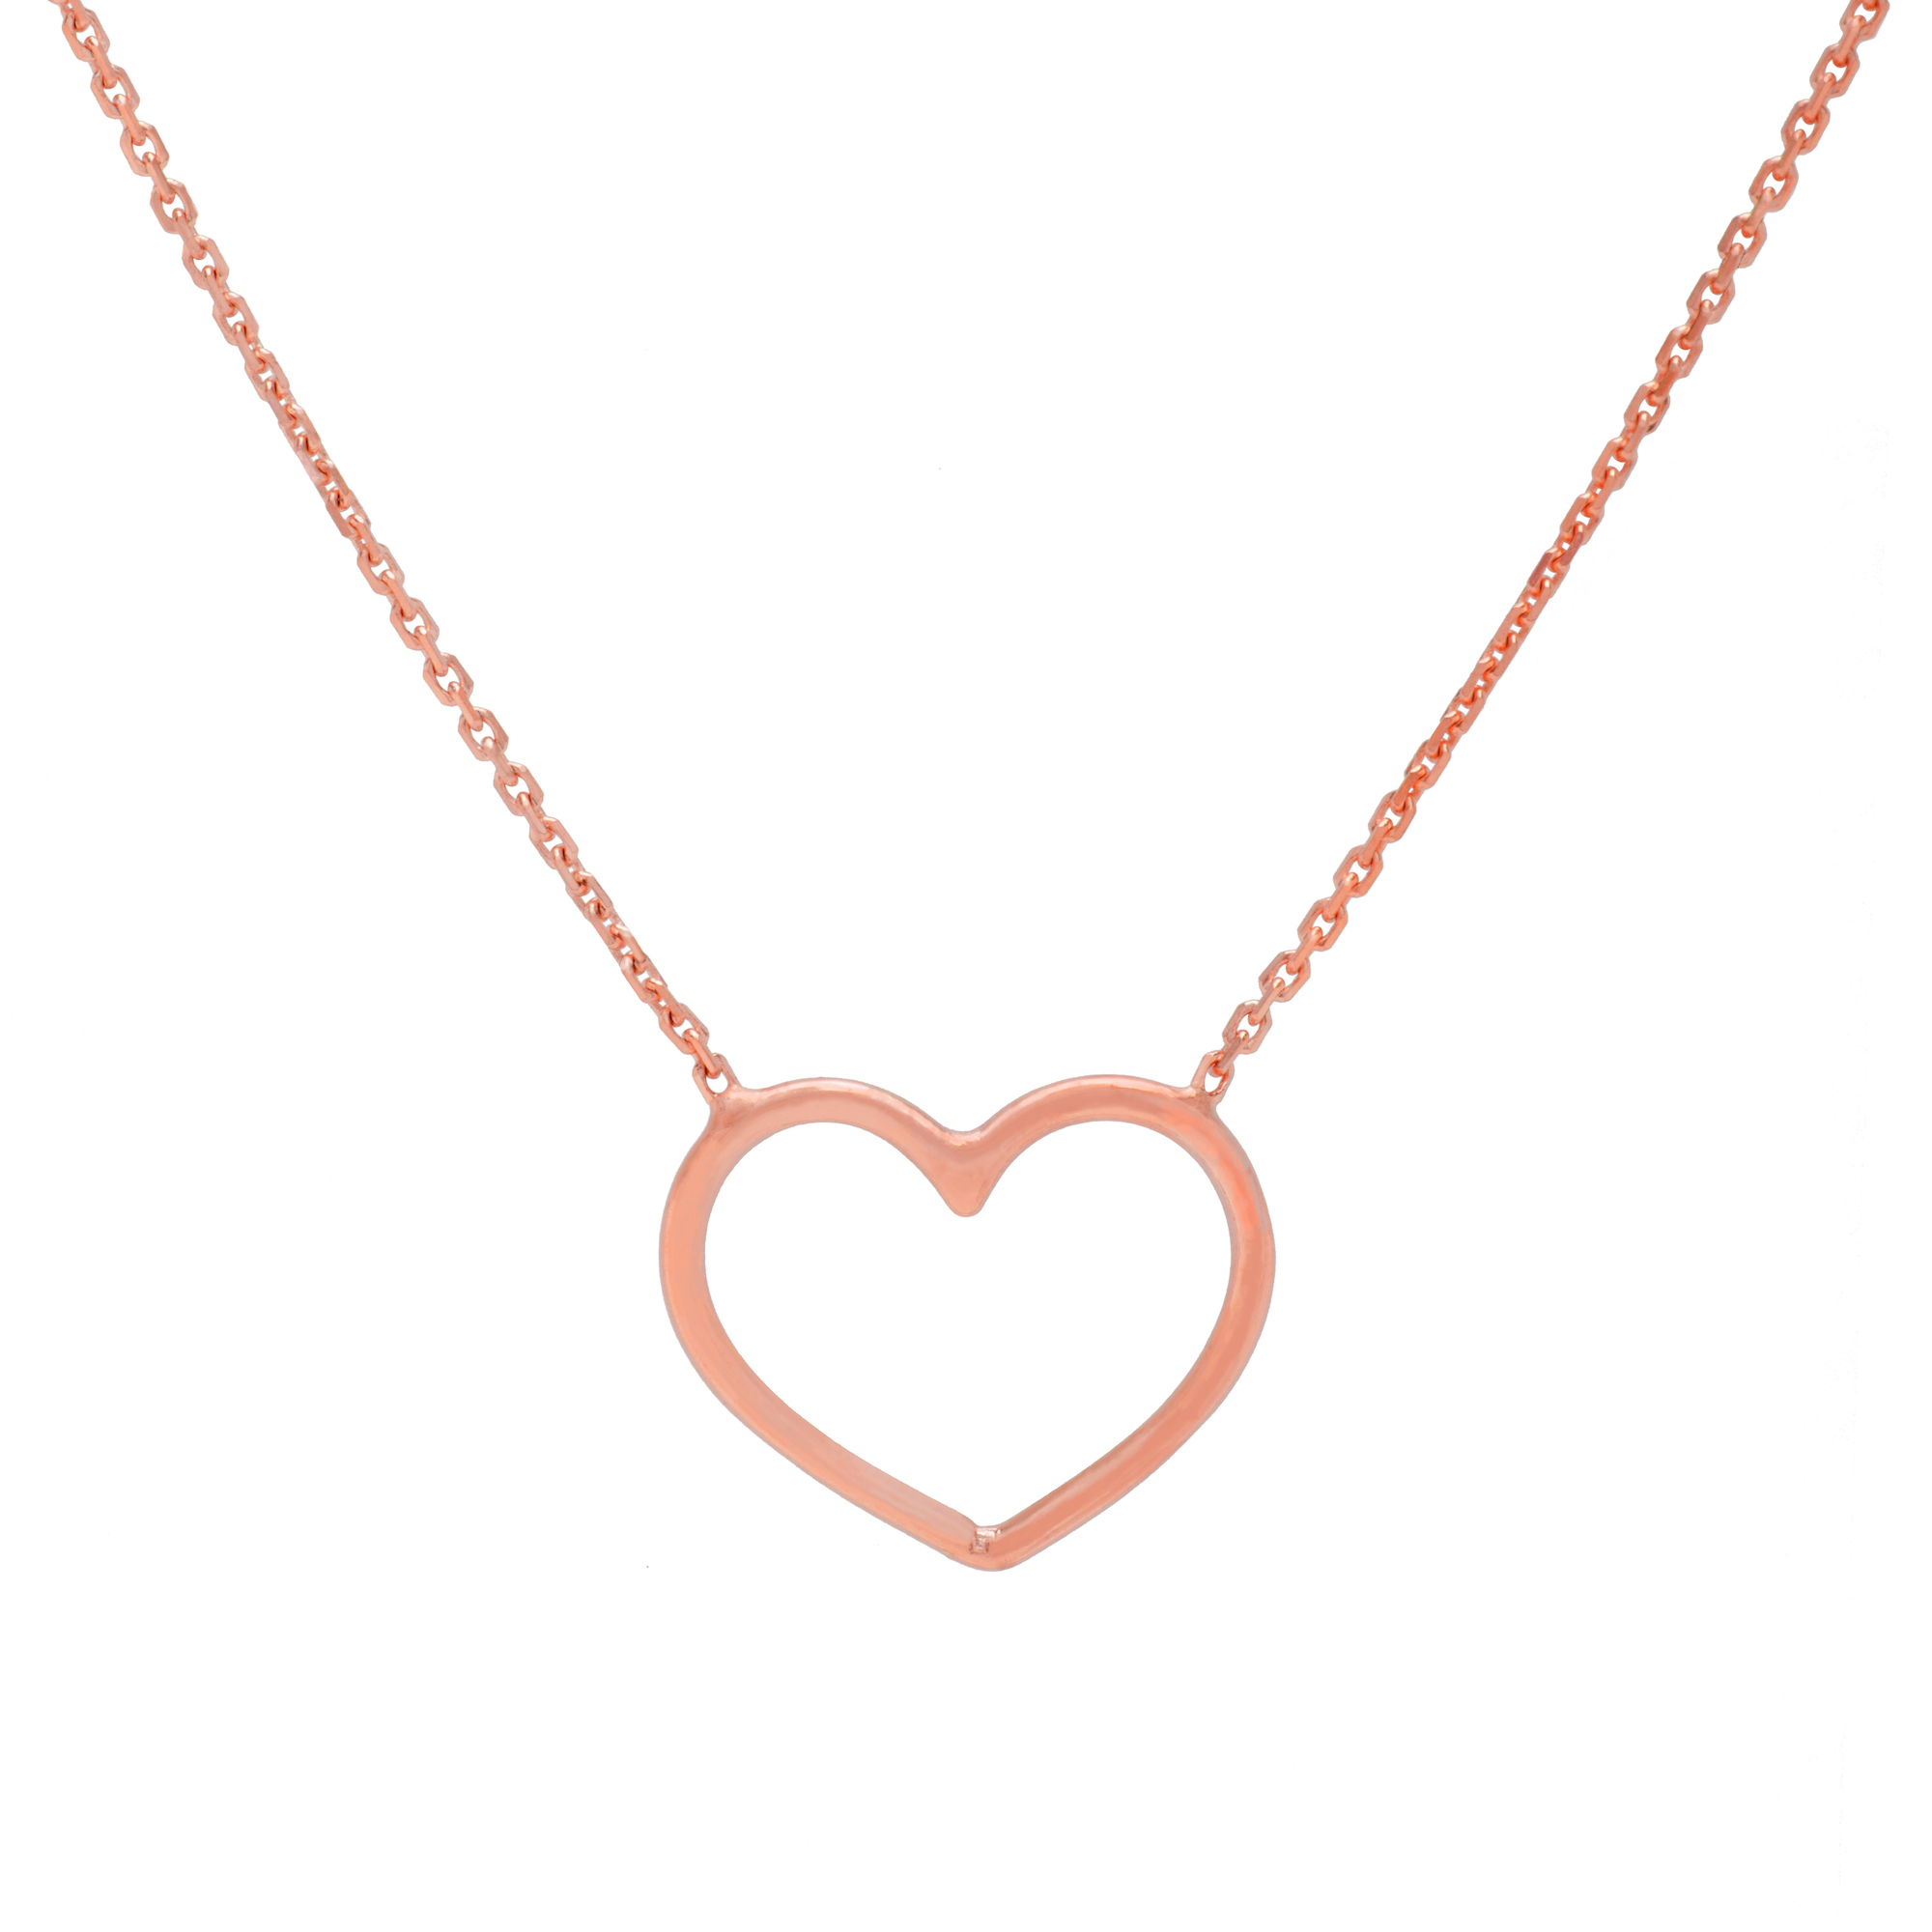 Heart Necklace, 14Kt Gold Heart Necklace 18